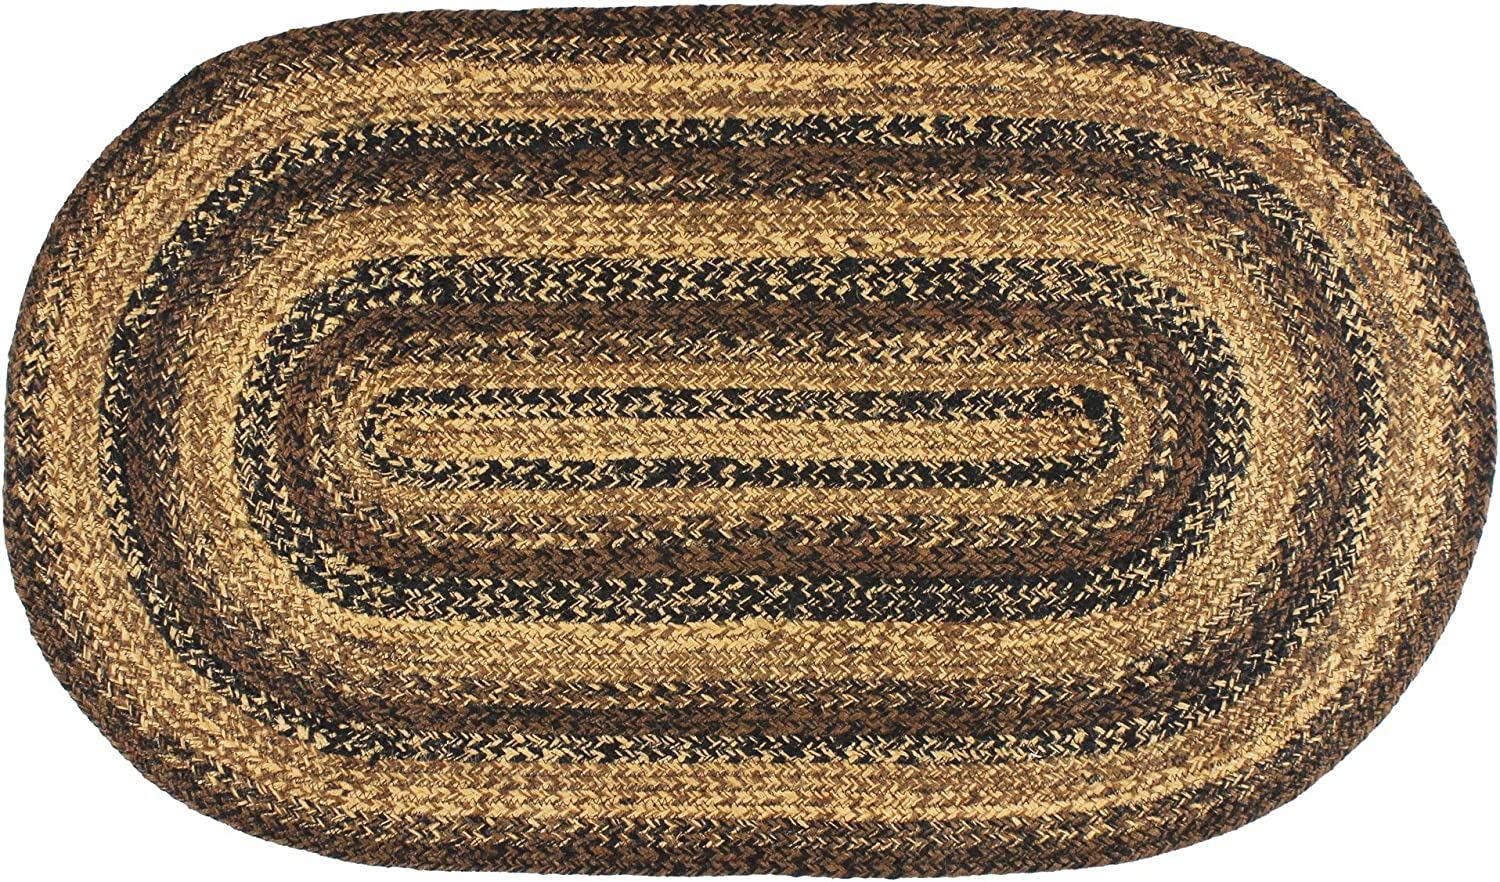 IHF Home Decor Braided Area Rug Cappuccino Design | Oval Area Carpet | Jute Natural Fiber Living Room Bedroom Porch Durable Floor Mat - 6' x 9'